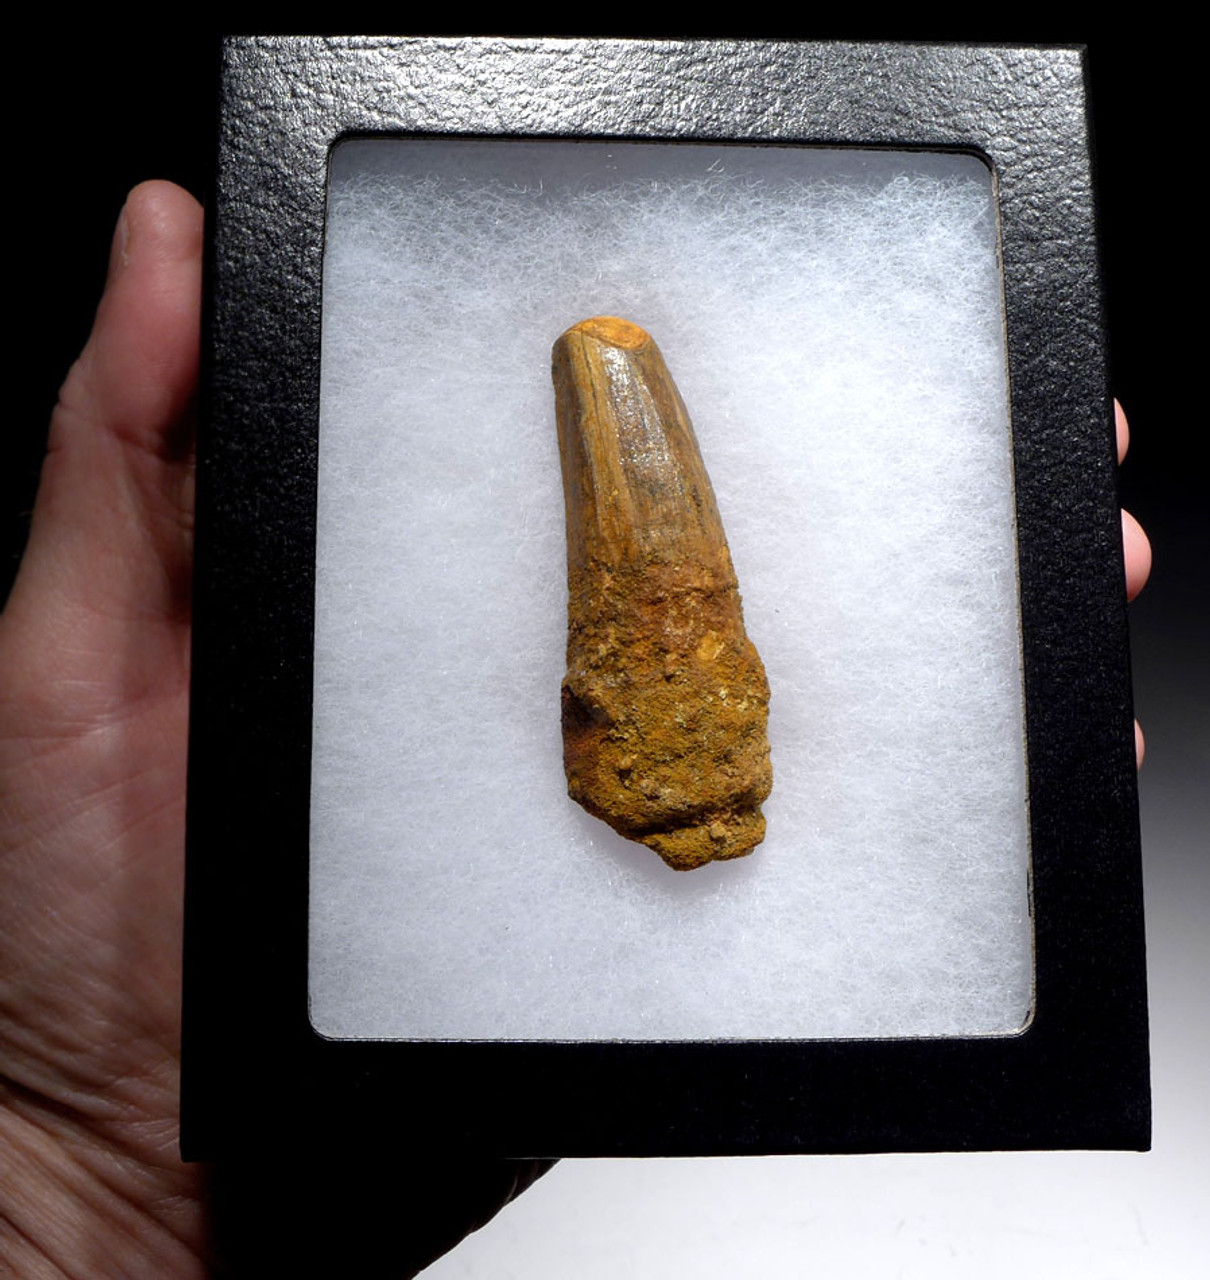 FINE QUALITY LARGE SPINOSAURUS 3.5 INCH DINOSAUR FOSSIL TOOTH *DT5-443